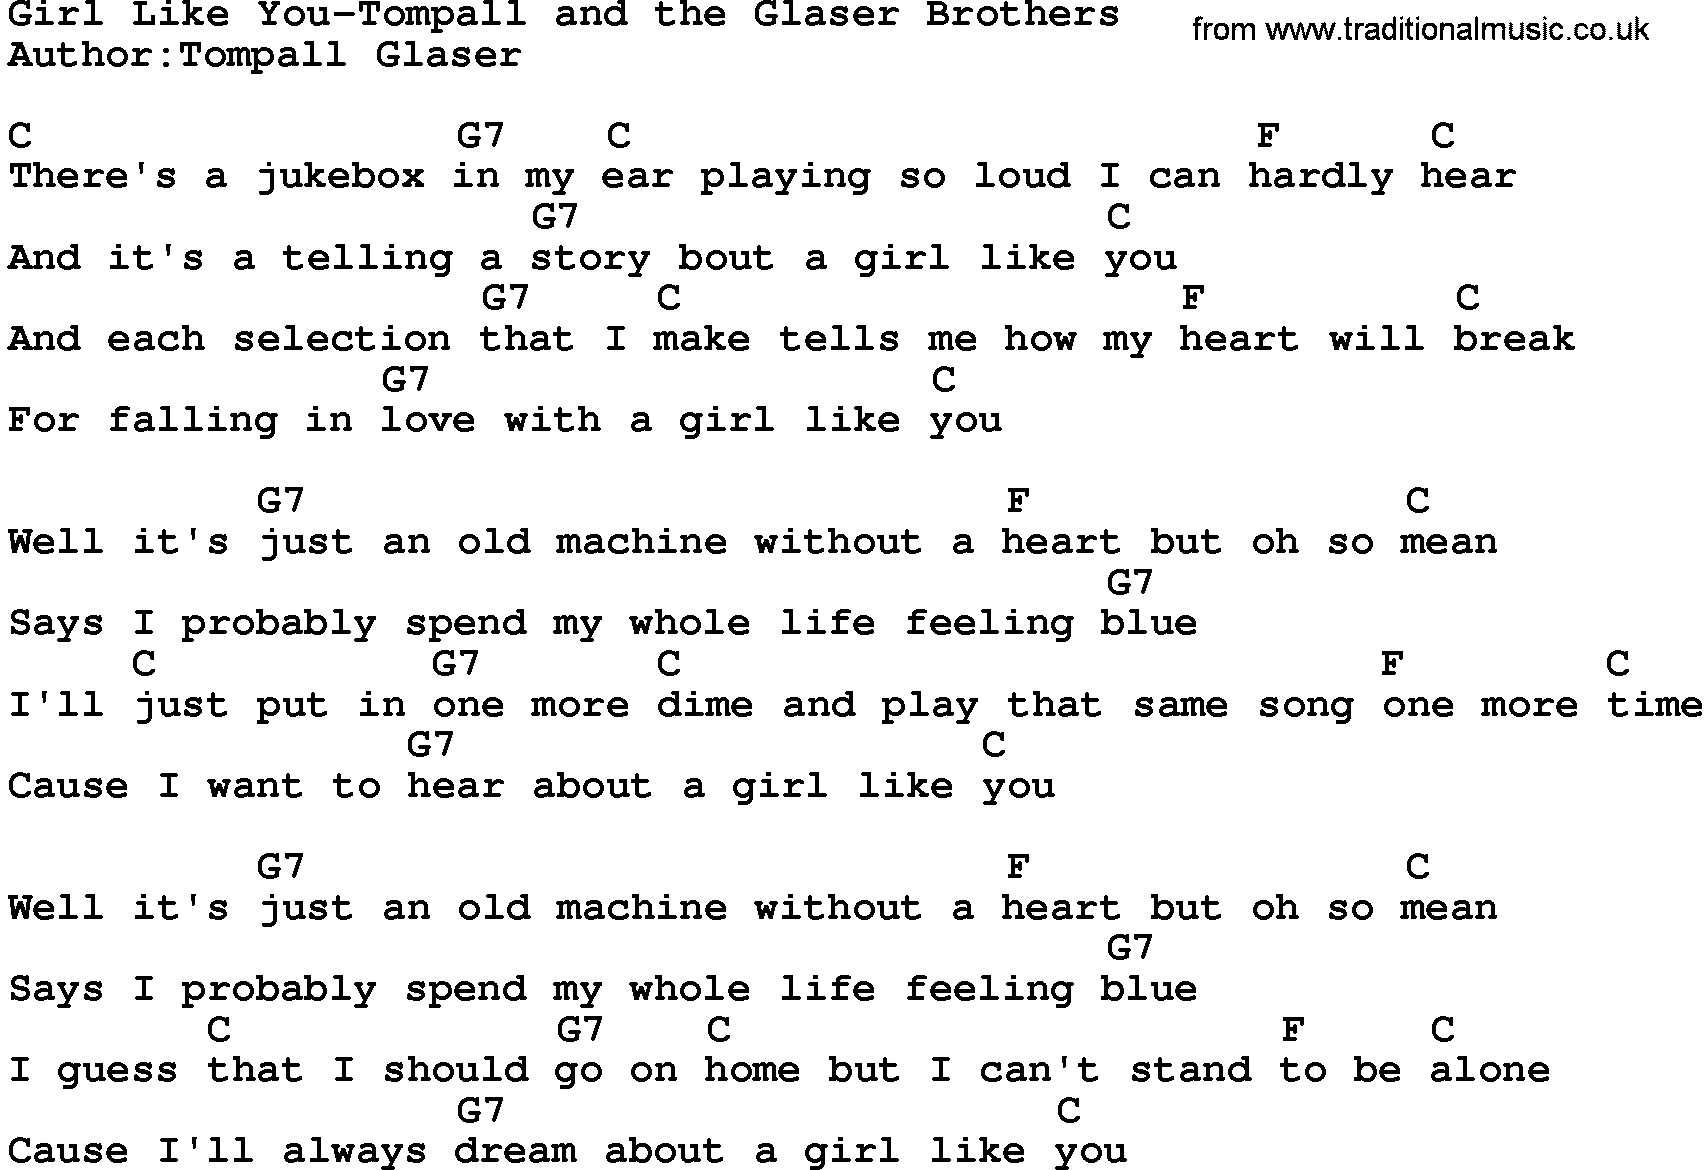 Country Musicgirl Like You Tompall And The Glaser Brothers Lyrics